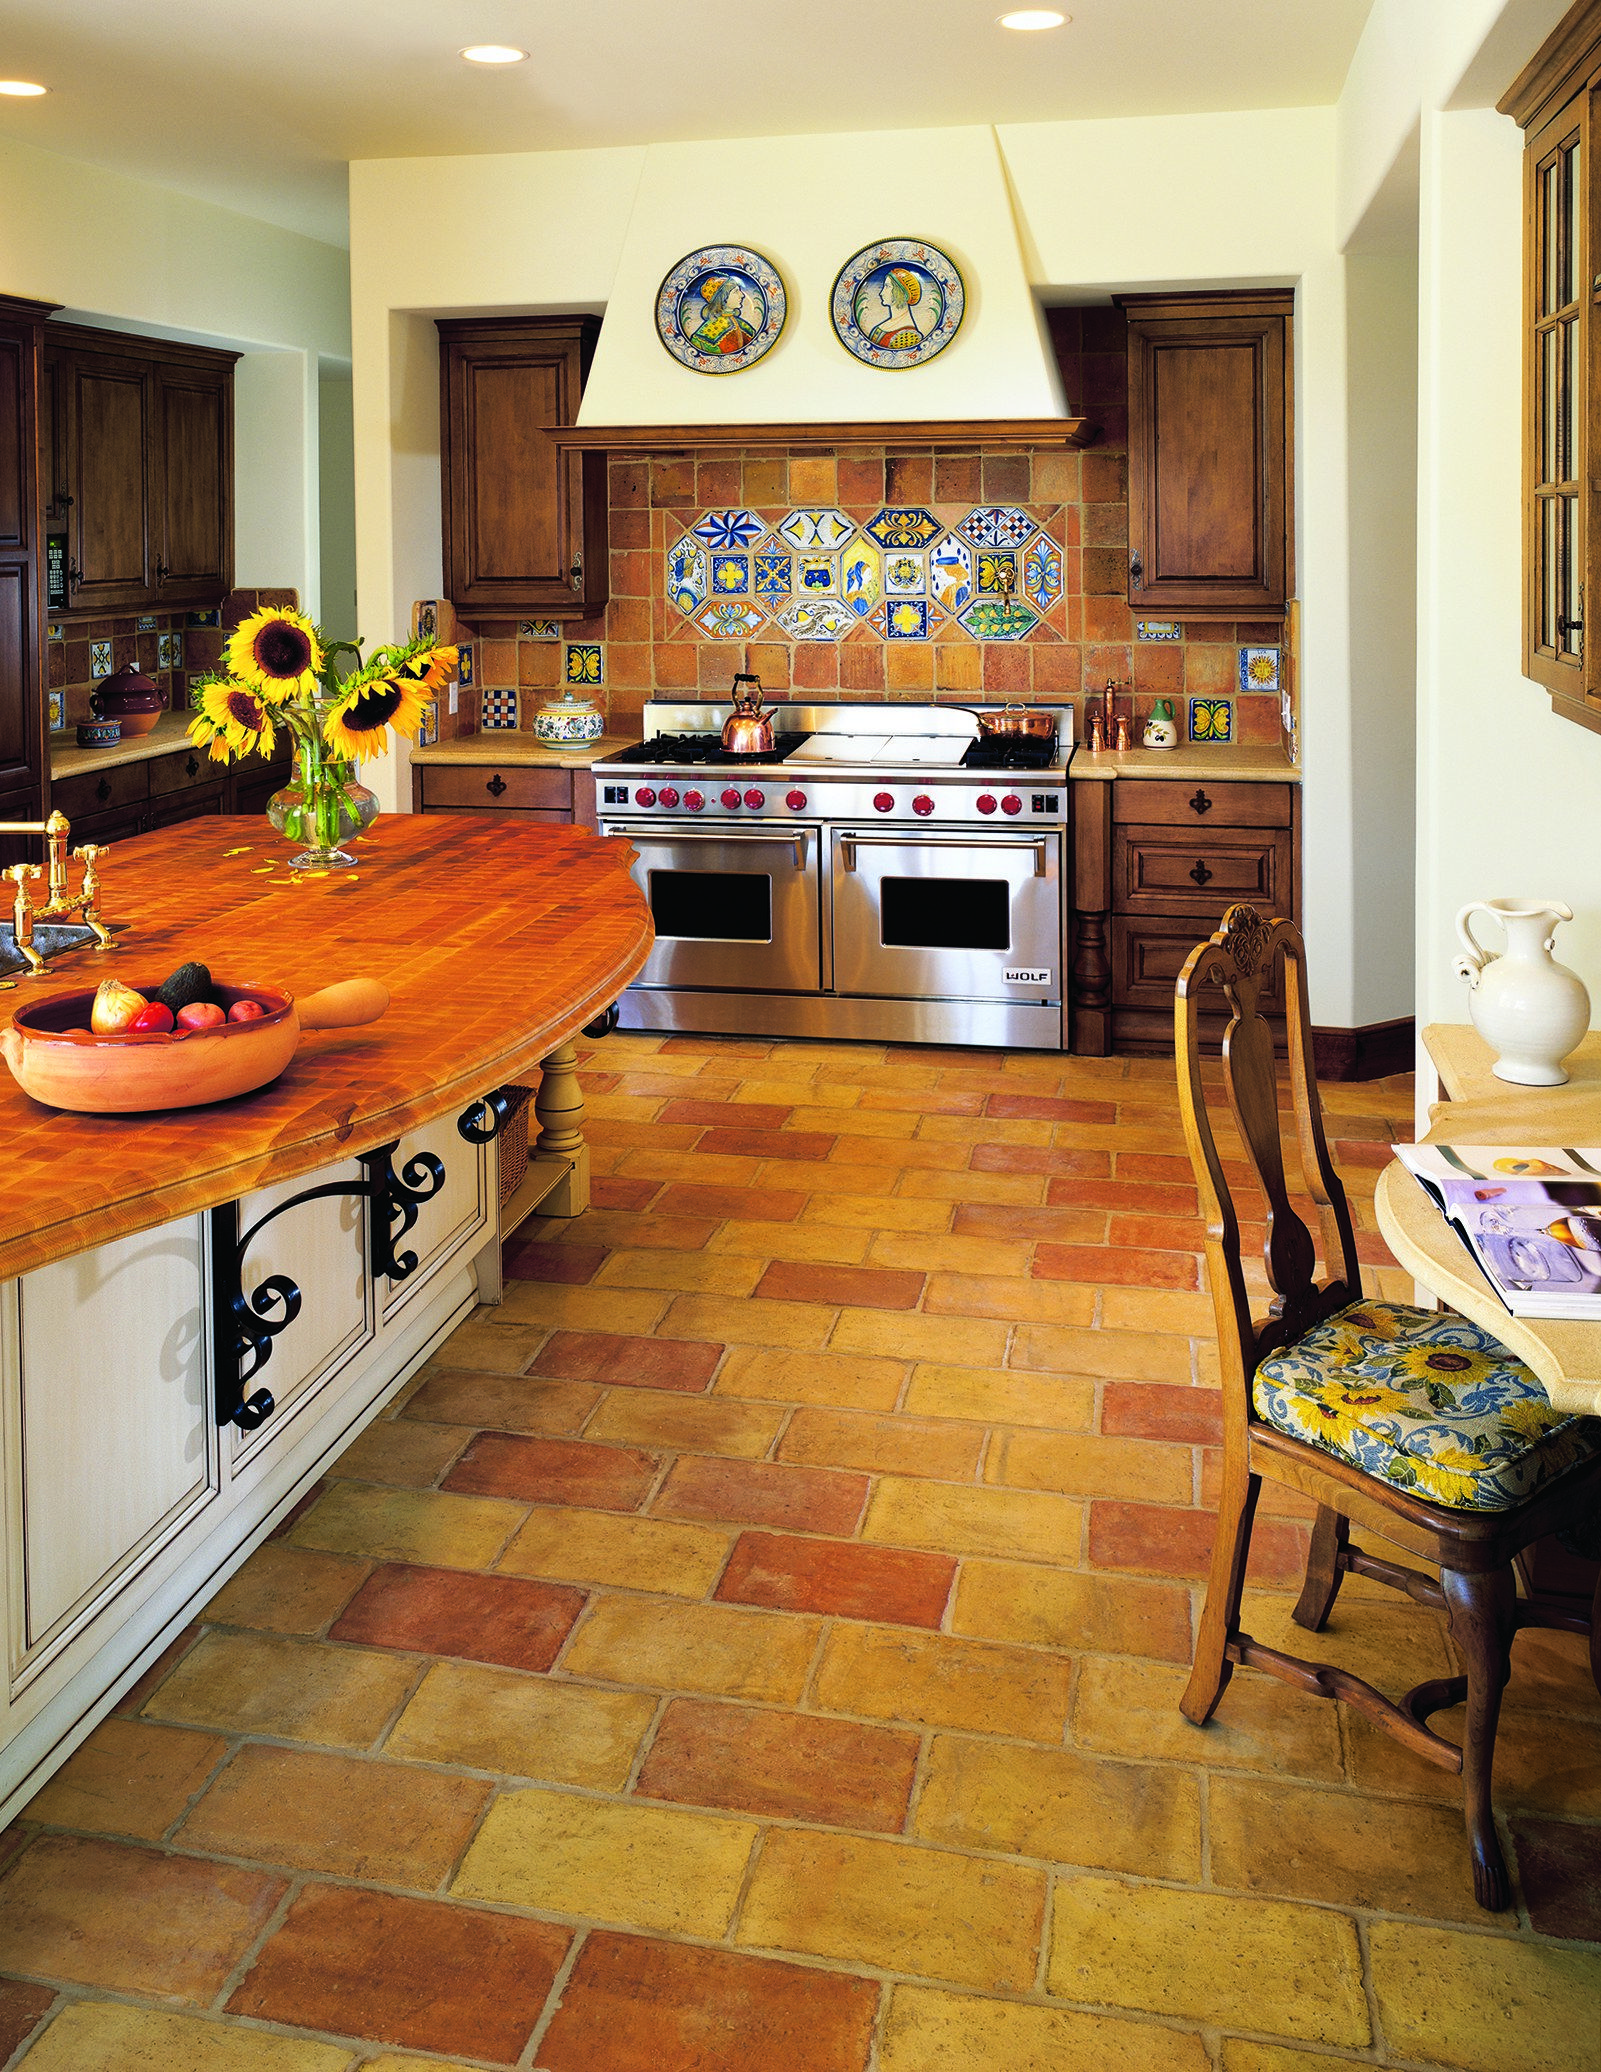 Kitchen Flooring Ideas – wood, tile, and parquet flooring Photos | Architectural Digest